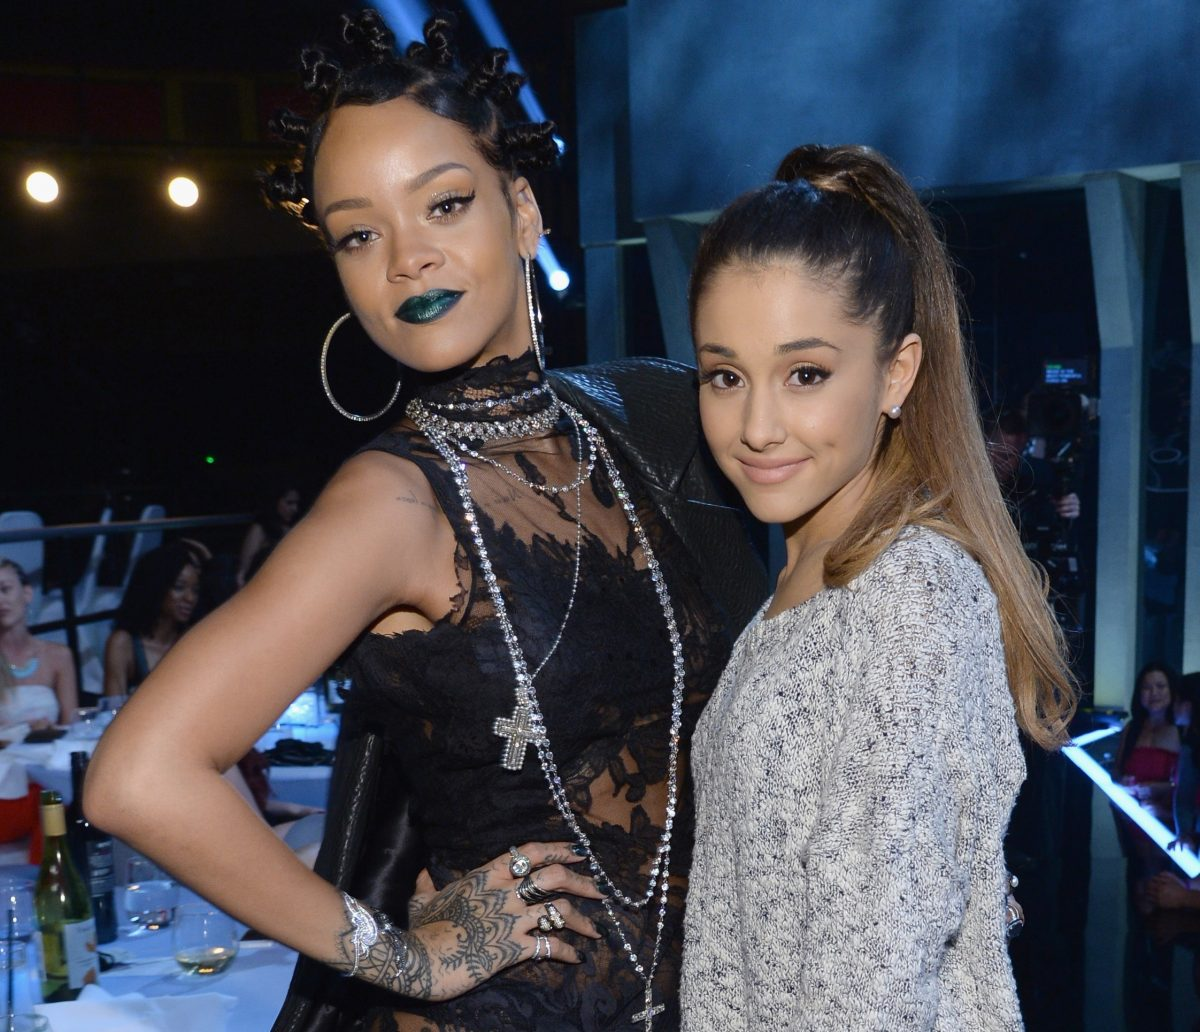 (l-r) Singers Rihanna and Ariana Grande attend the iHeartRadio Music Awards on May 1, 2014.